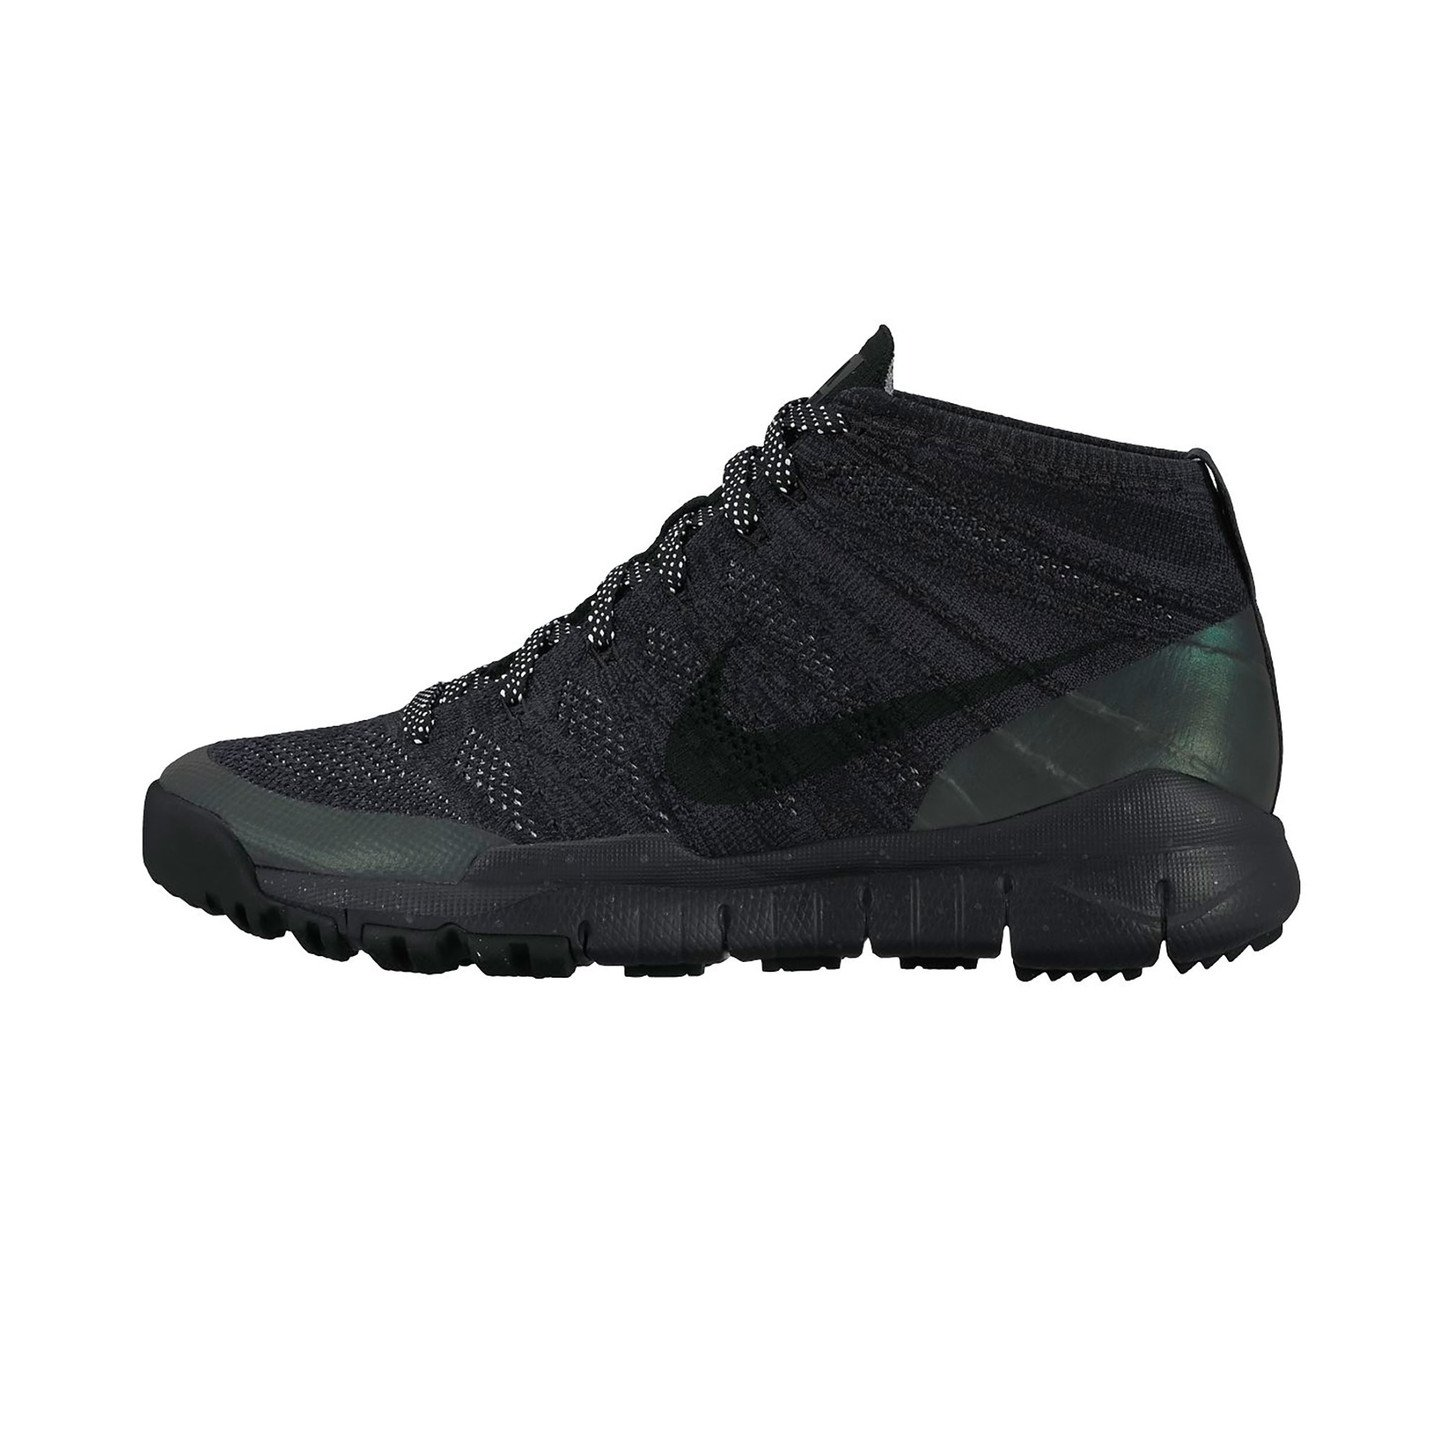 Nike Flyknit Trainer Chukka Sneakerboot Black / Anthracite 805092-001-42.5